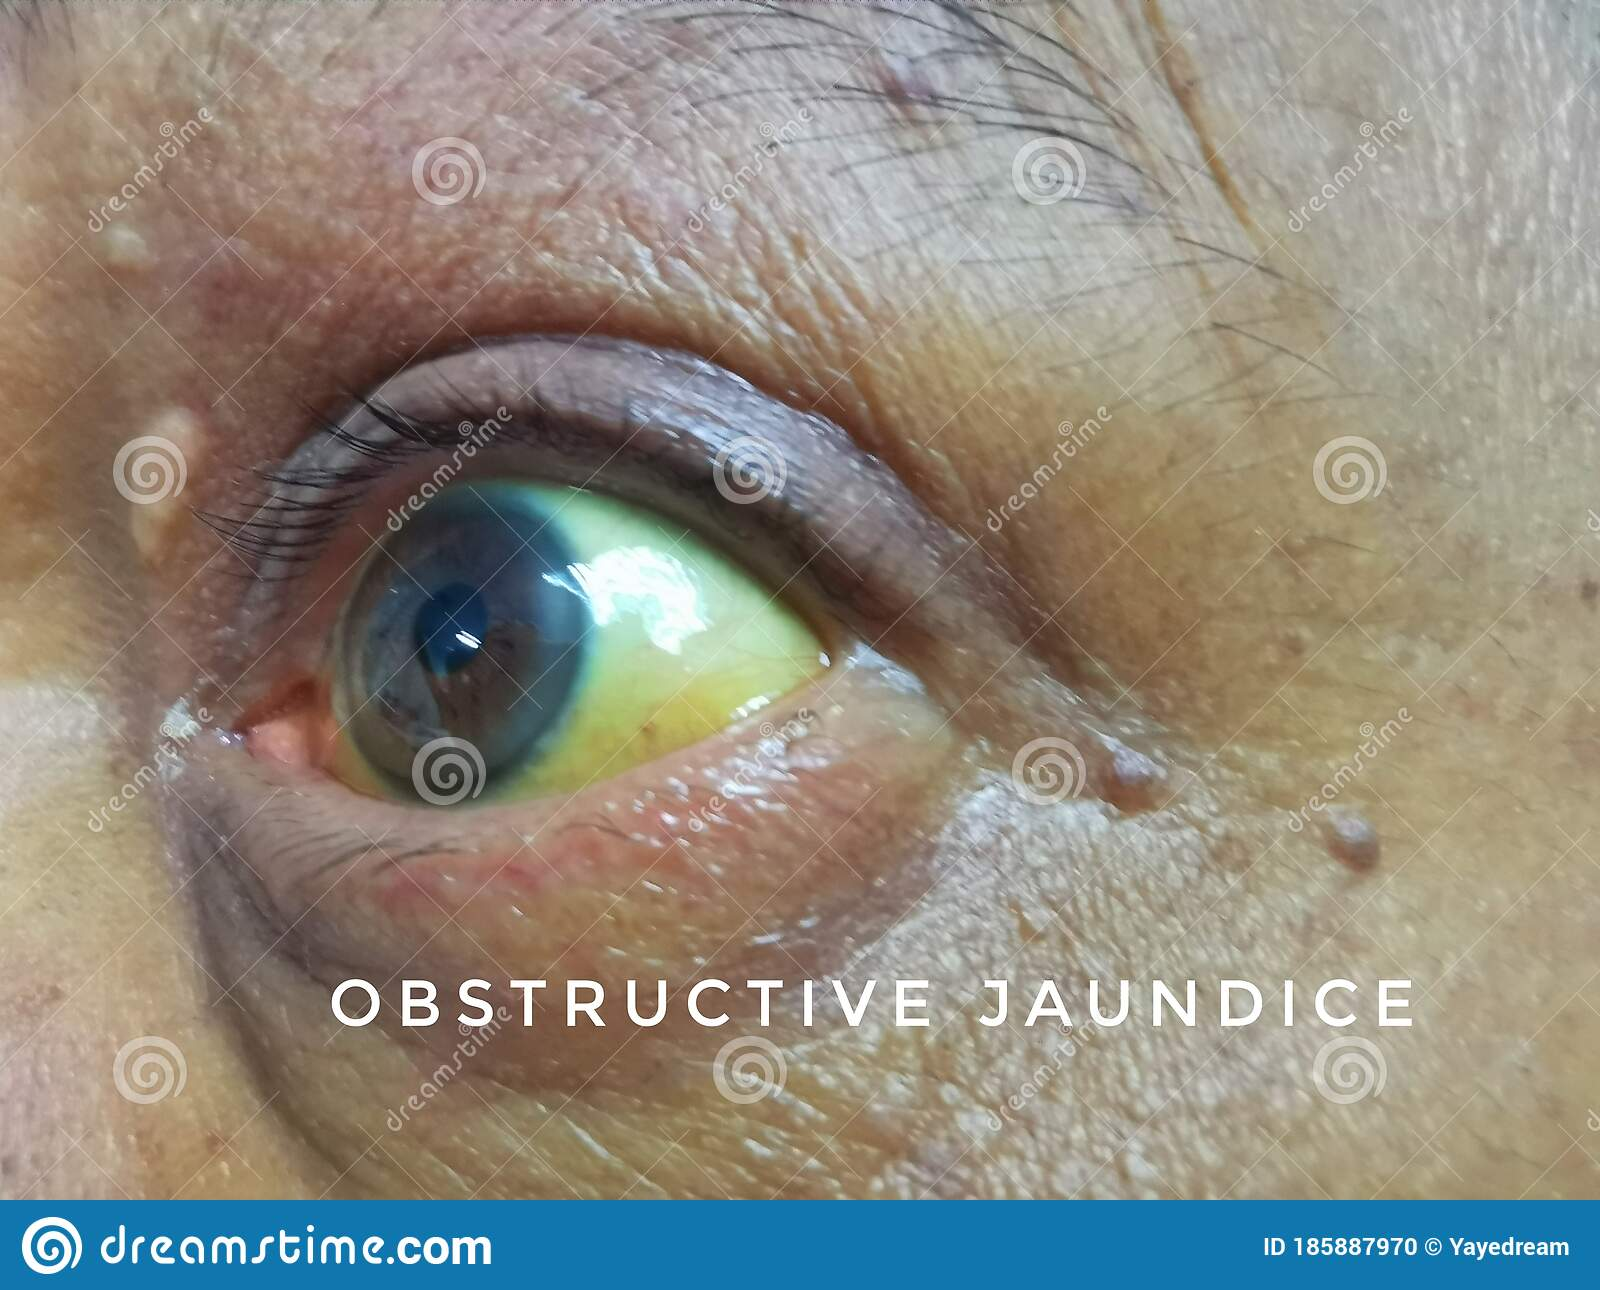 Pancreatic cancer with jaundice Rectal cancer and colon cancer